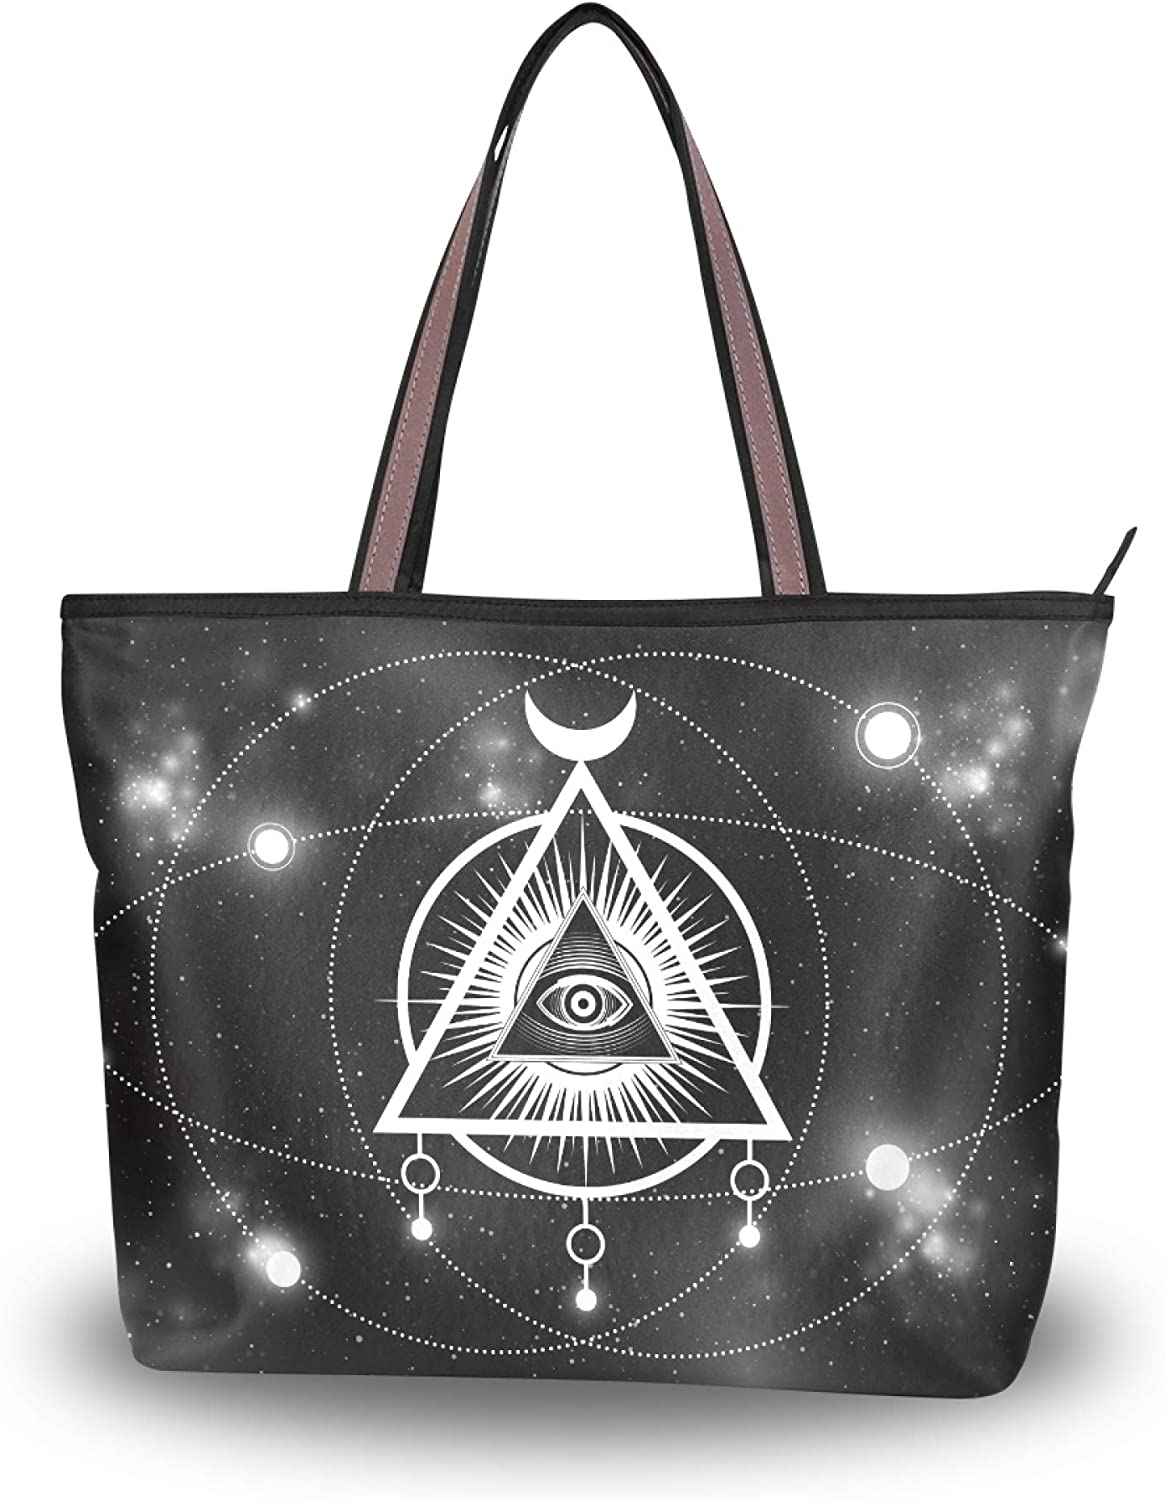 Tote Bag Handbag for Women The Third Pyrami Translated Inside NEW before selling ☆ Triangle Eye